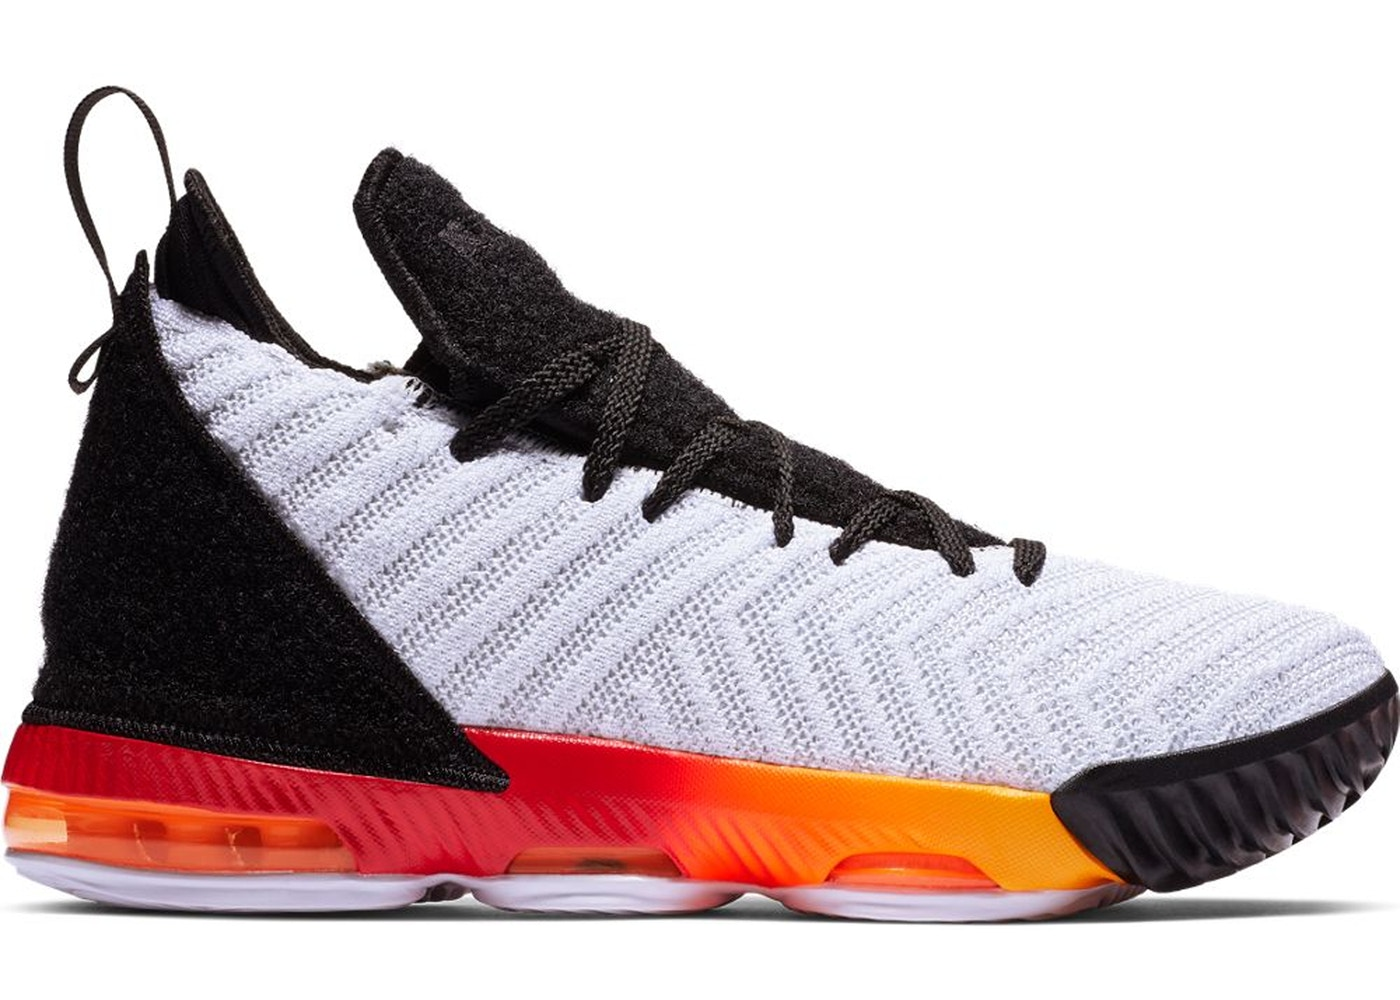 low priced 521ec 0a11d Nike LeBron Shoes - Release Date